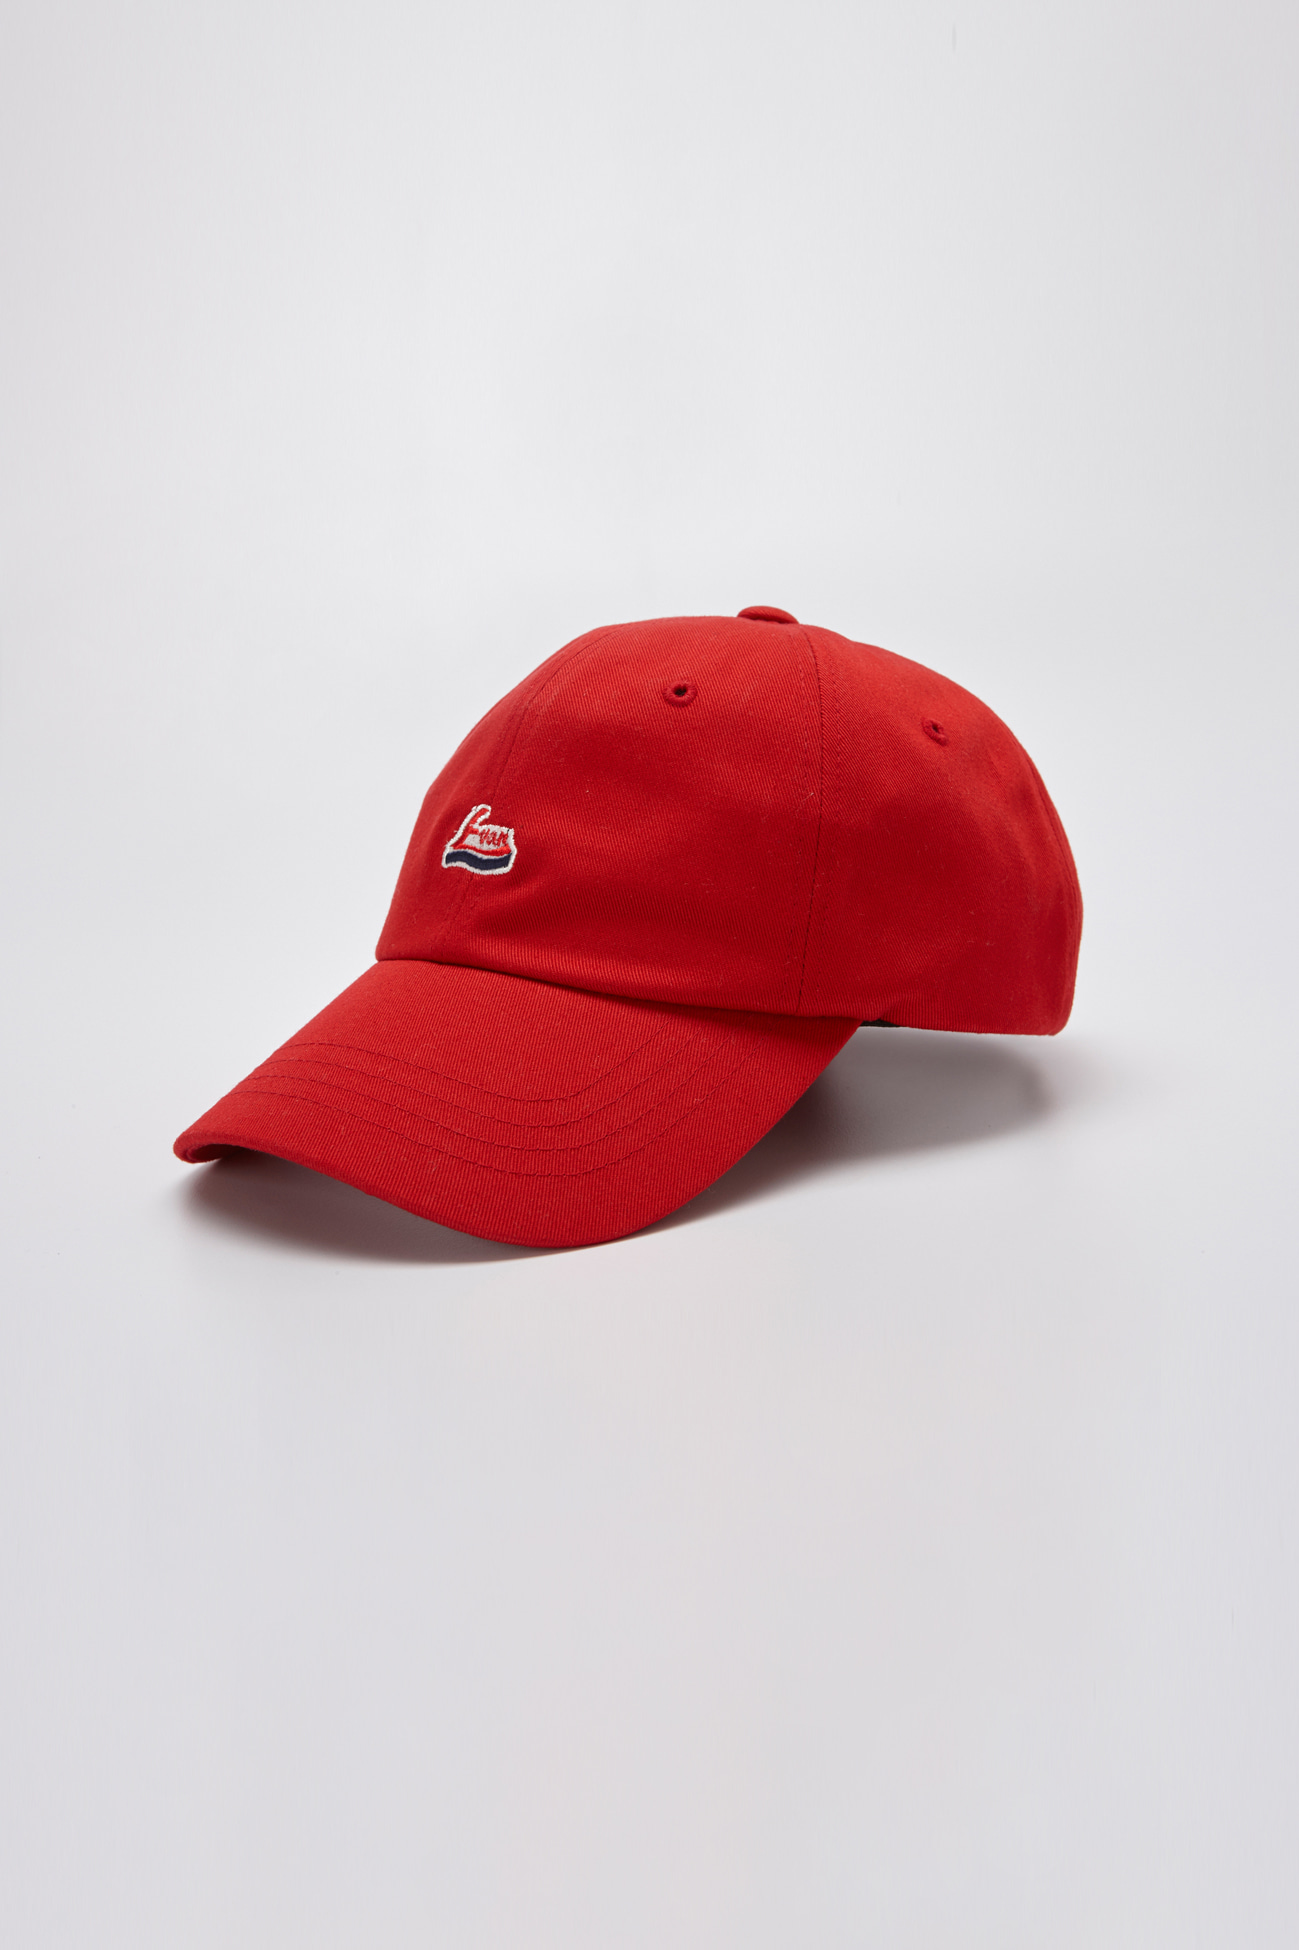 EVAN LOGO CAP RED